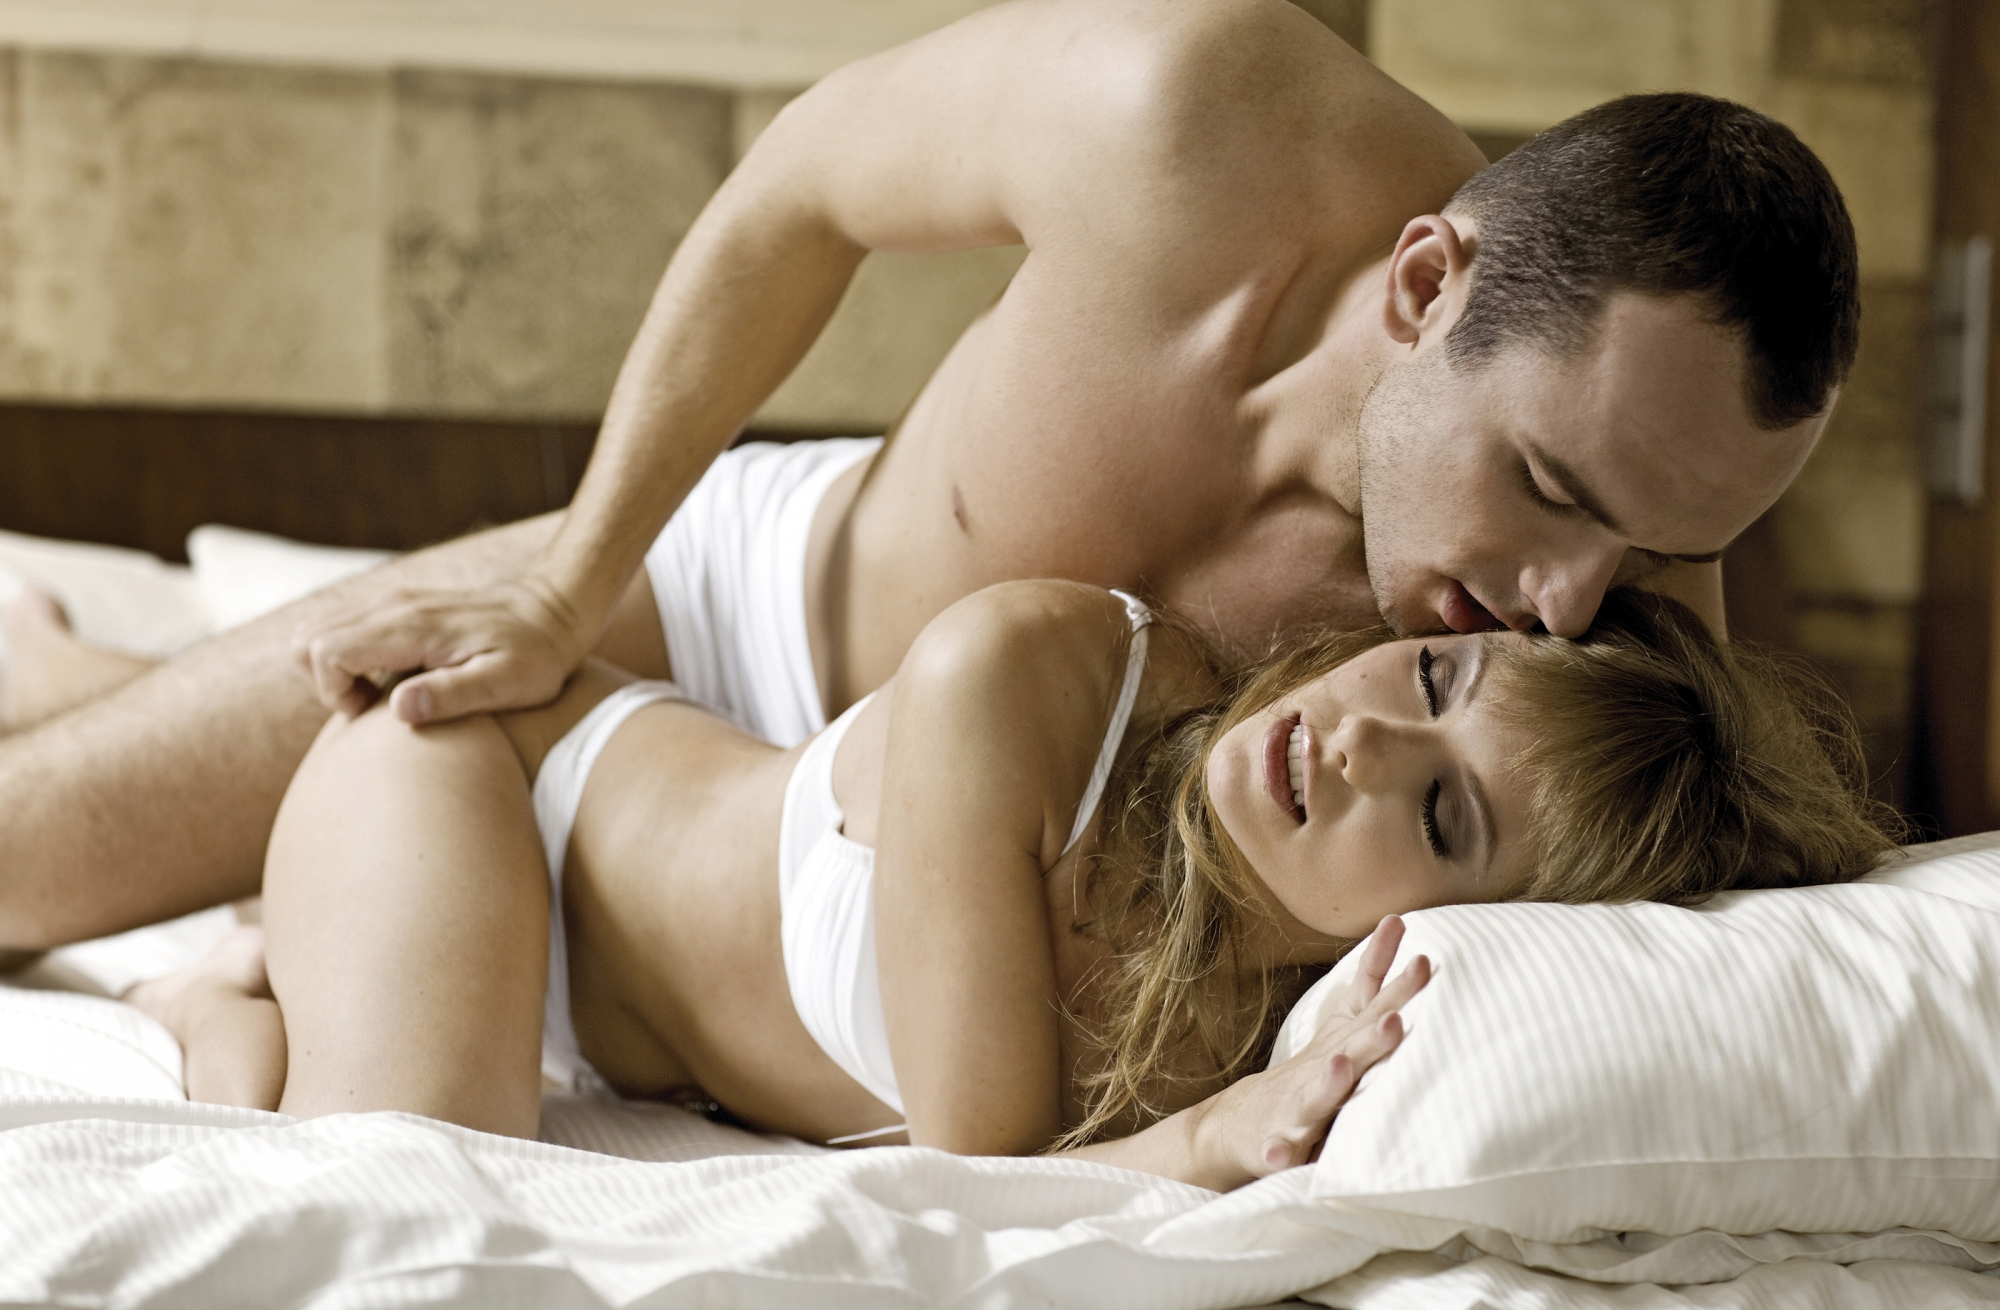 Vintage family threesome in bed fun sex images